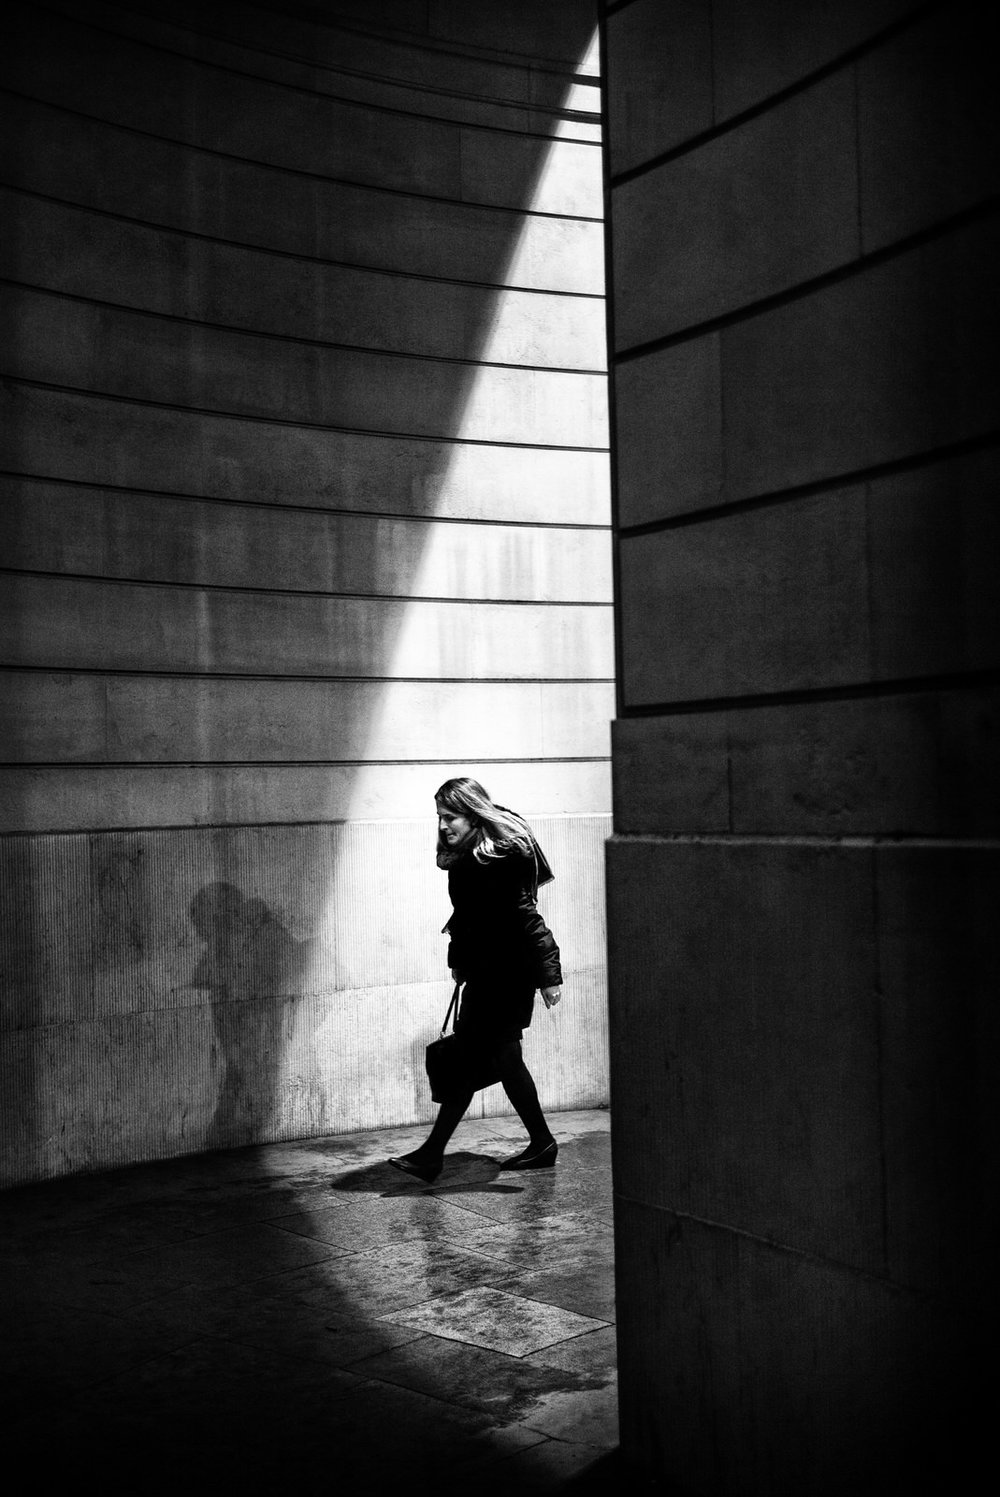 Alan Schaller - London Street Photographer - Metropolis31.jpg